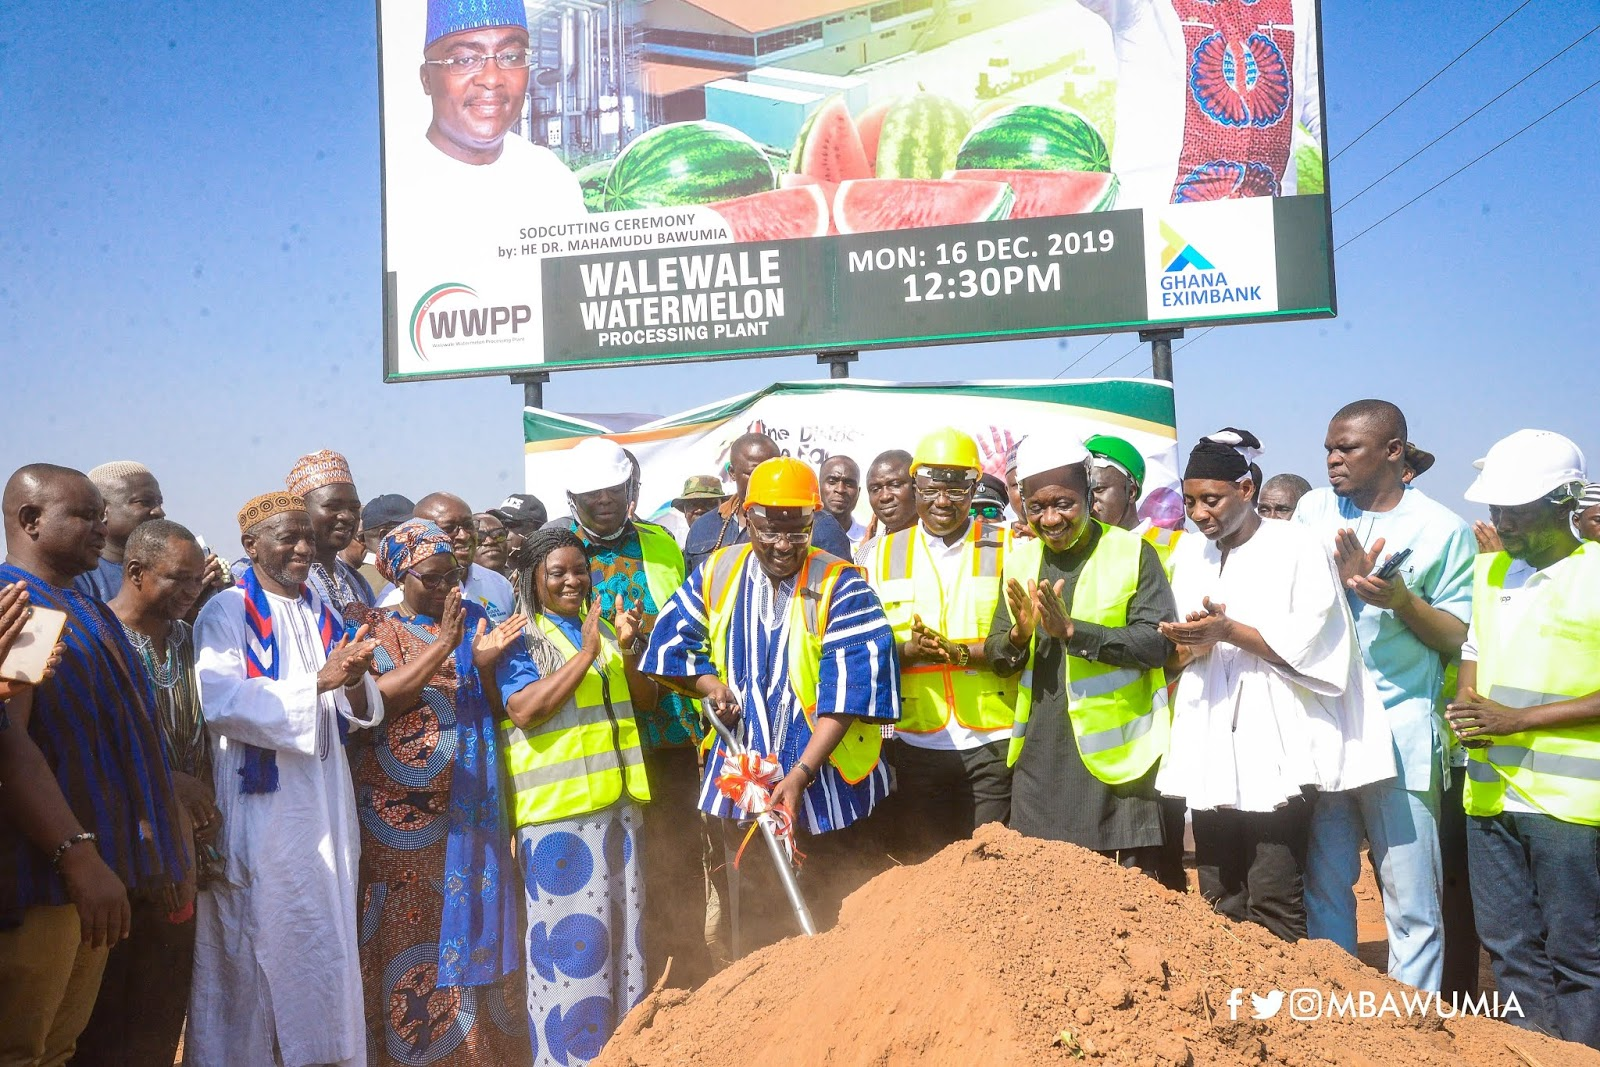 Vice President Dr. Bawumia cut sod for works to begin on the construction of a Watermelon Processing Factory at Walewale in the North East Region of Ghana - Richkid Empire Music